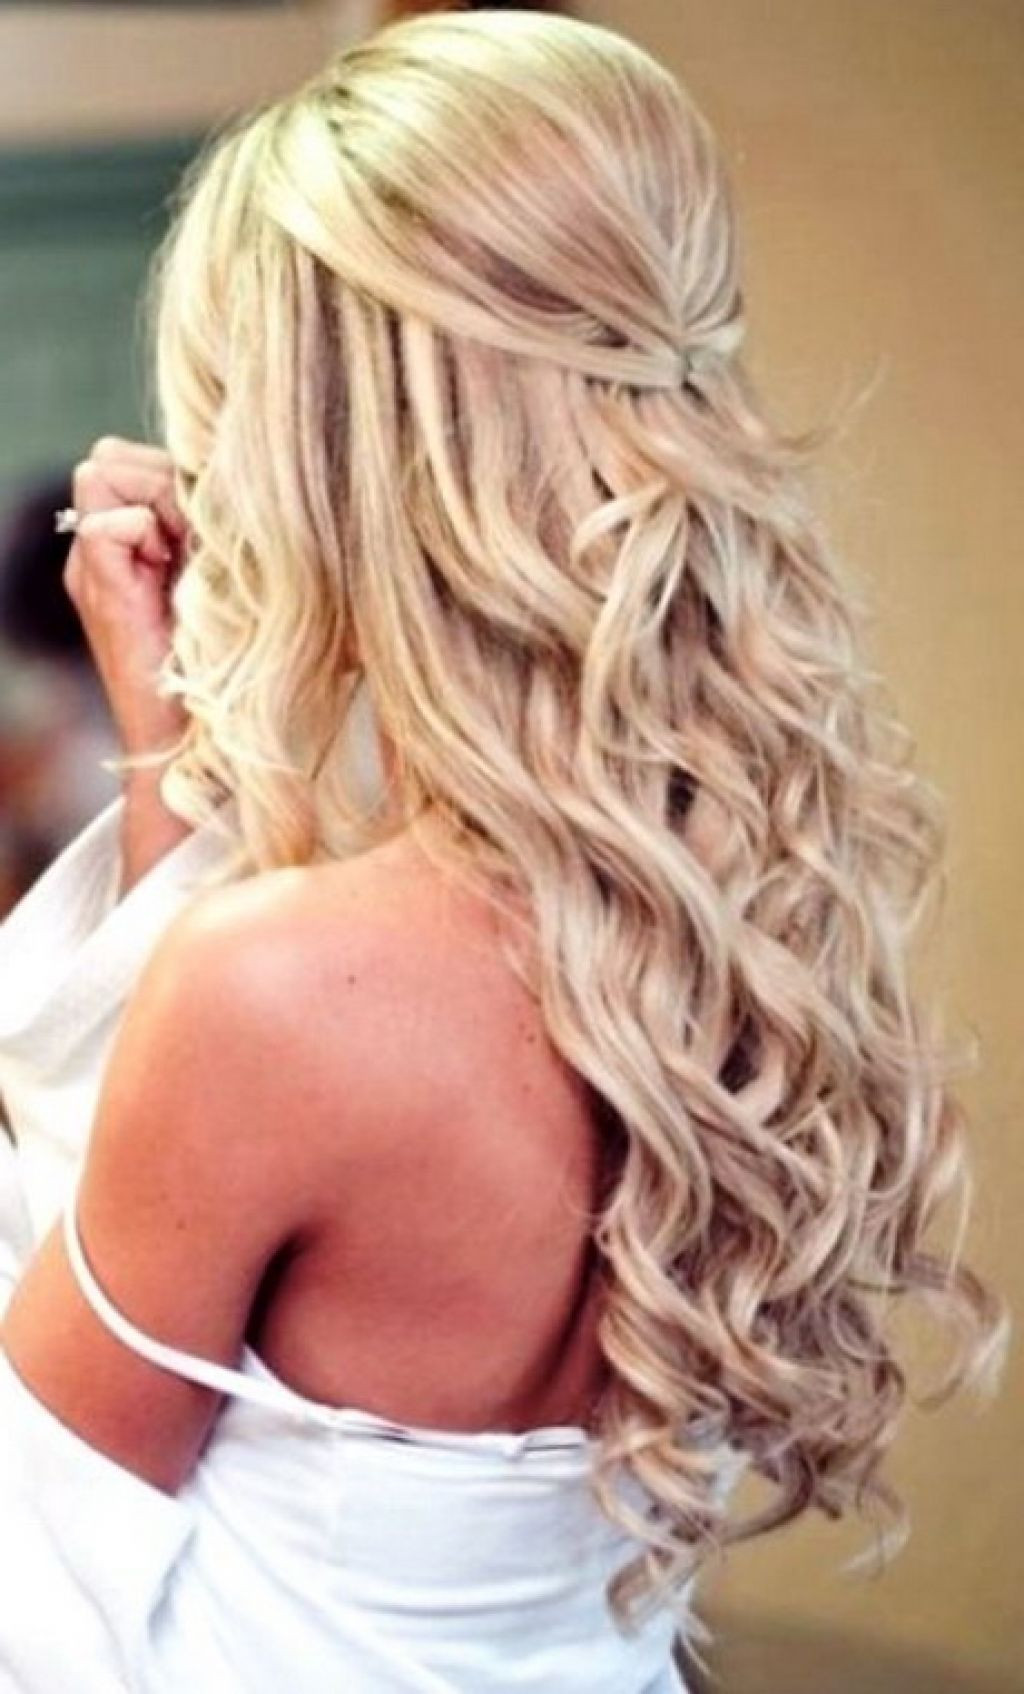 Best ideas about Hairstyle Ideas For Medium Hair . Save or Pin Prom hair ideas for medium hair Hairstyle for women & man Now.